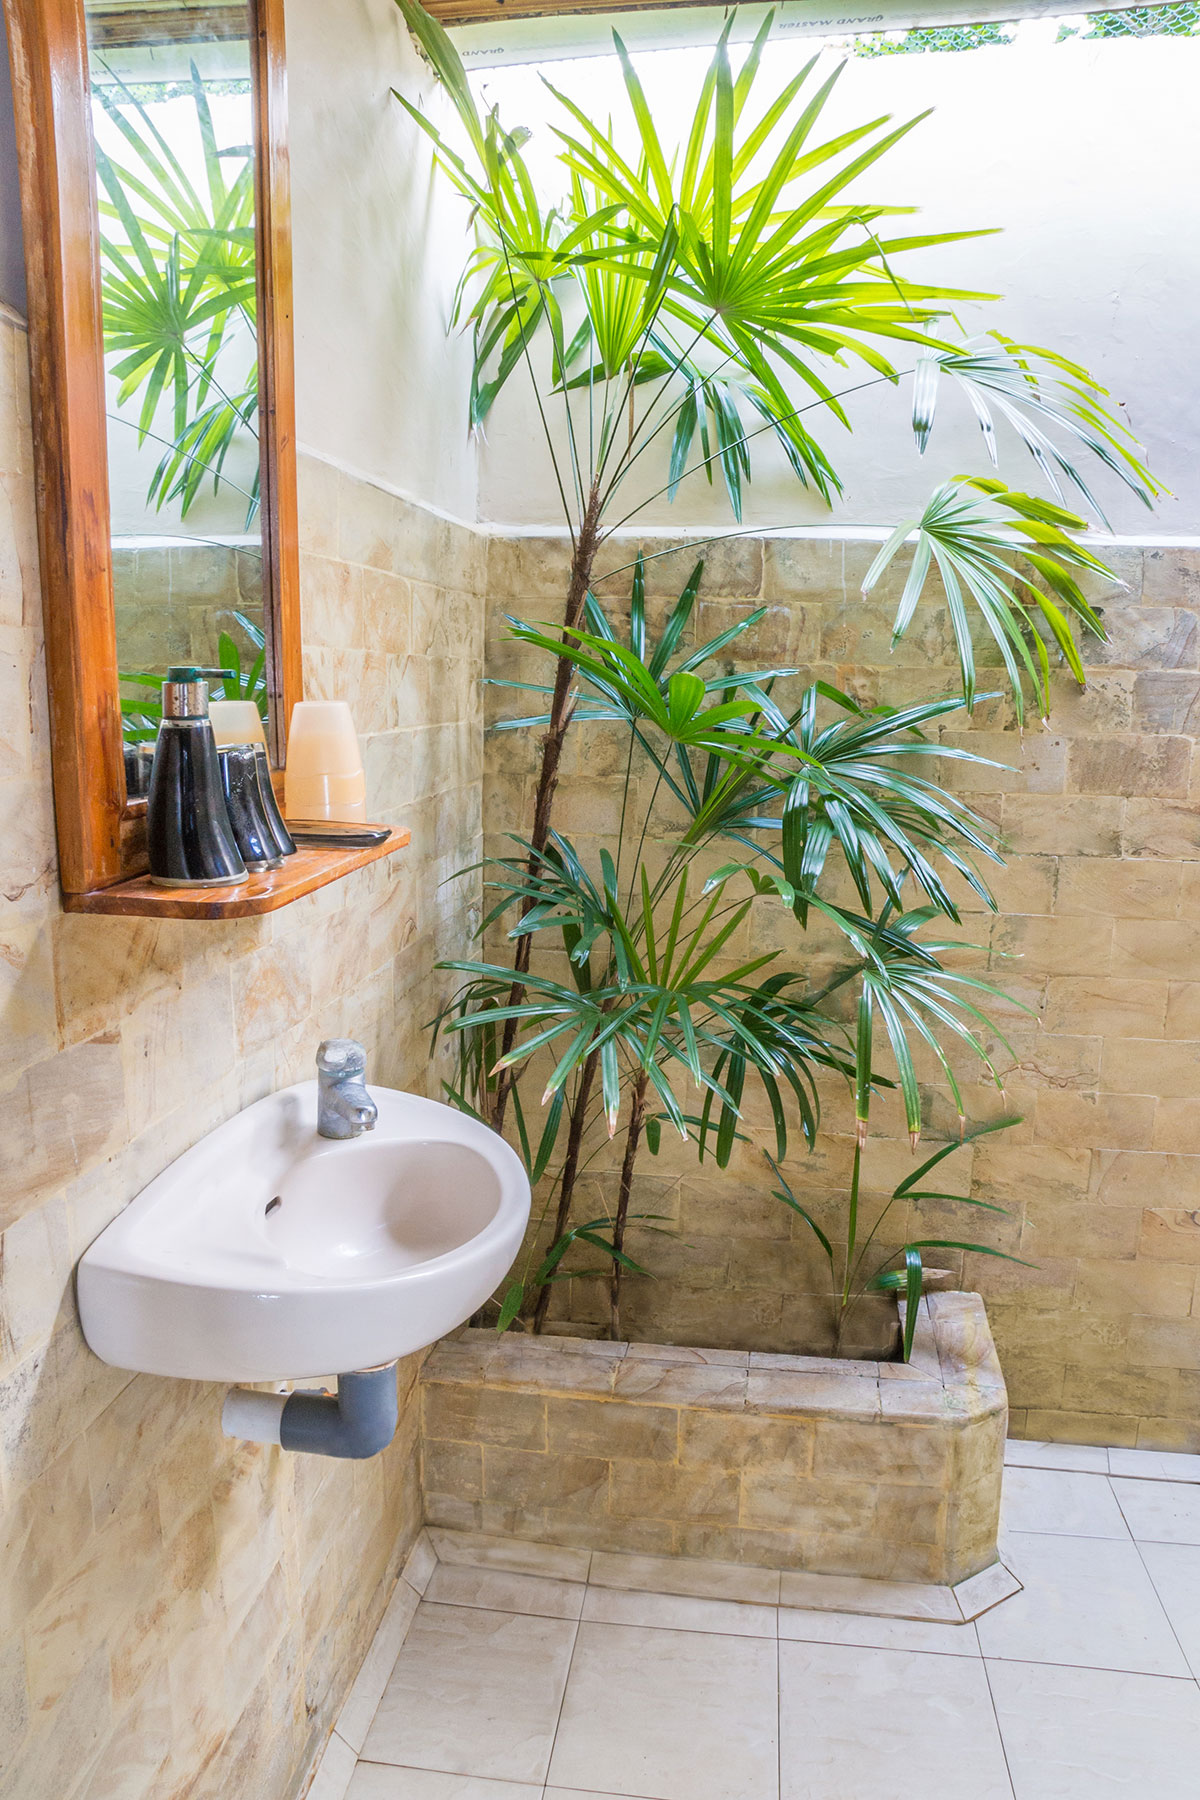 Sea Front Bungalow Bathroom, Seabreeze Resort, Bunaken Island, Manado, Indonesia